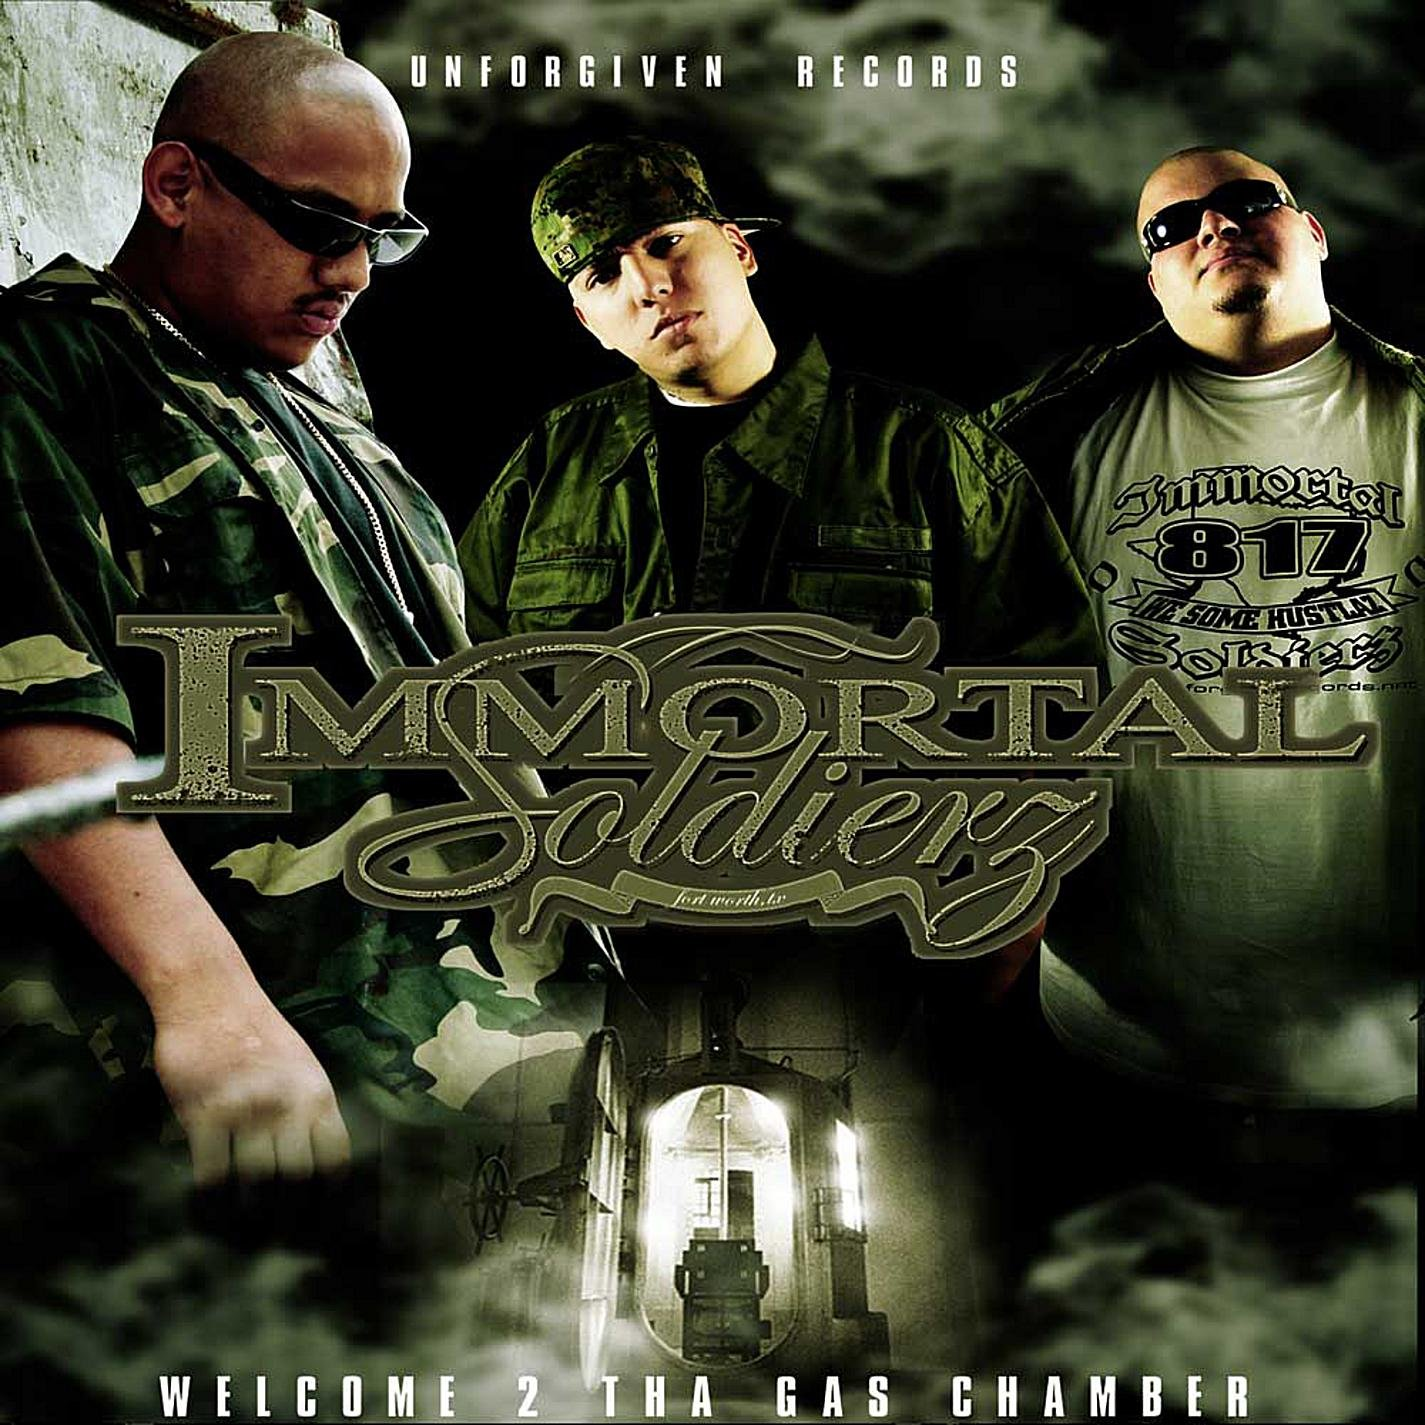 Immortal Soldierz - Welcome 2 Tha Gas Chamber (2008) [FLAC] Download